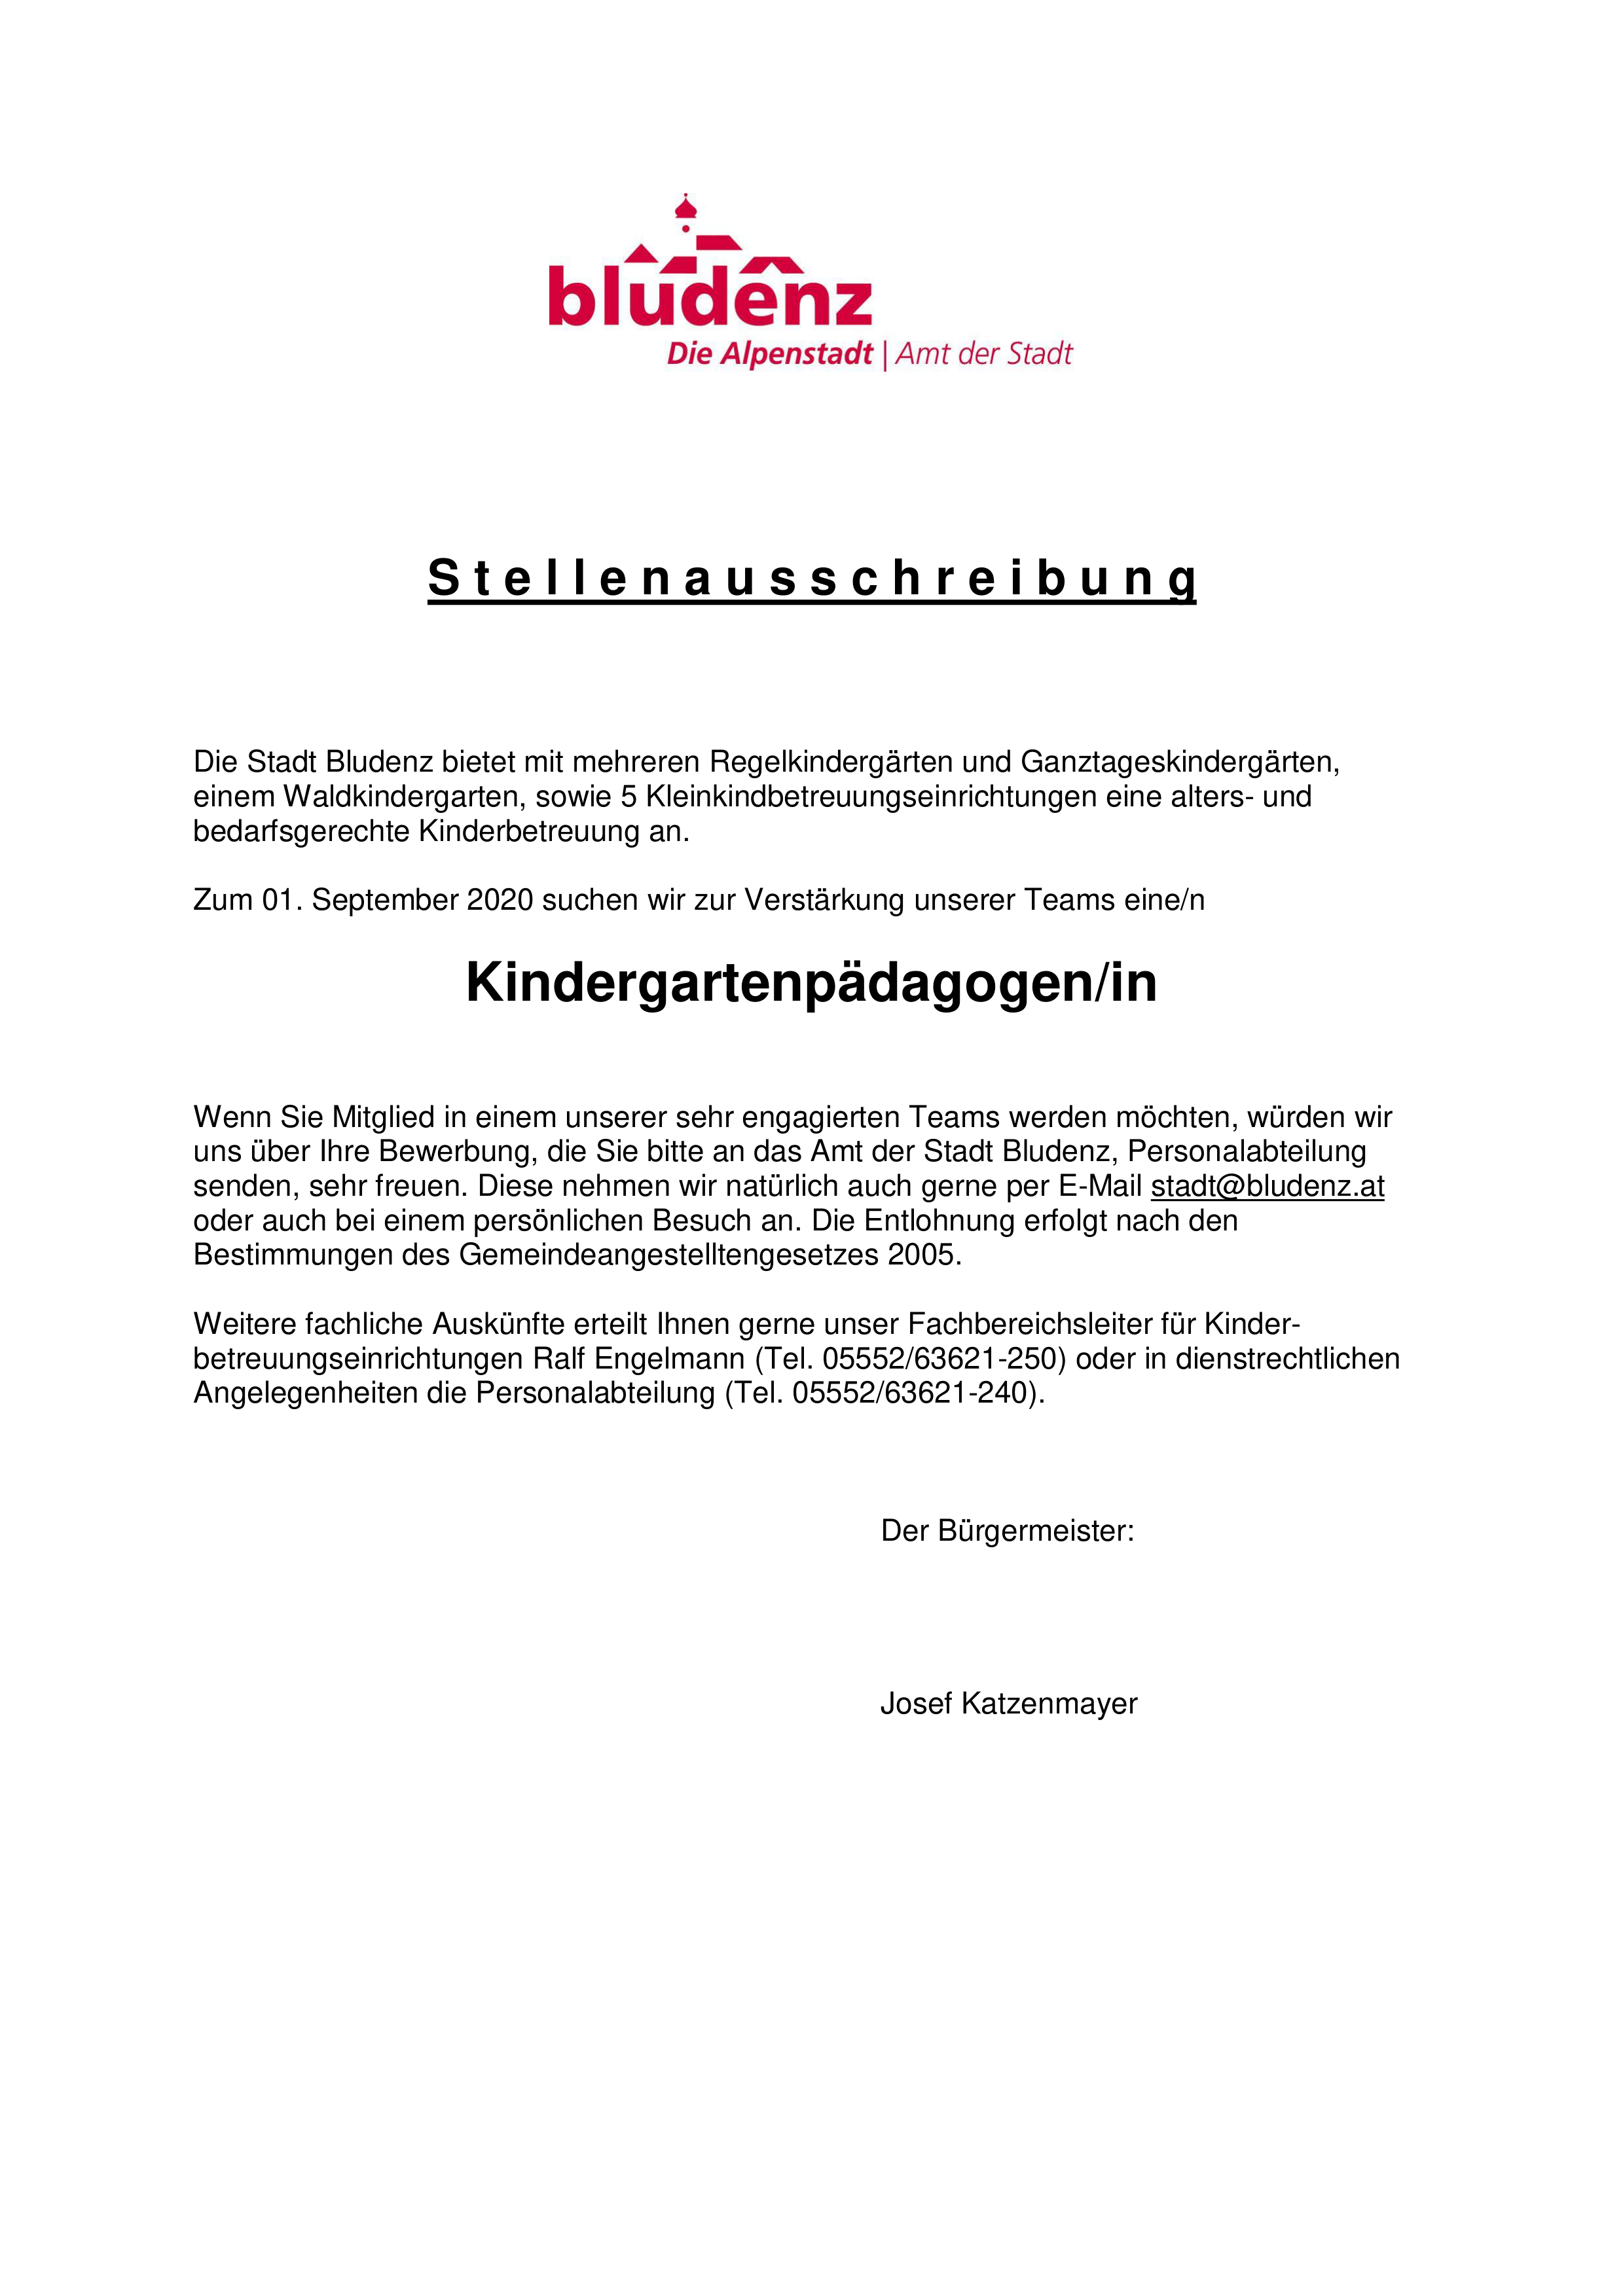 KindergartenpädagogIn